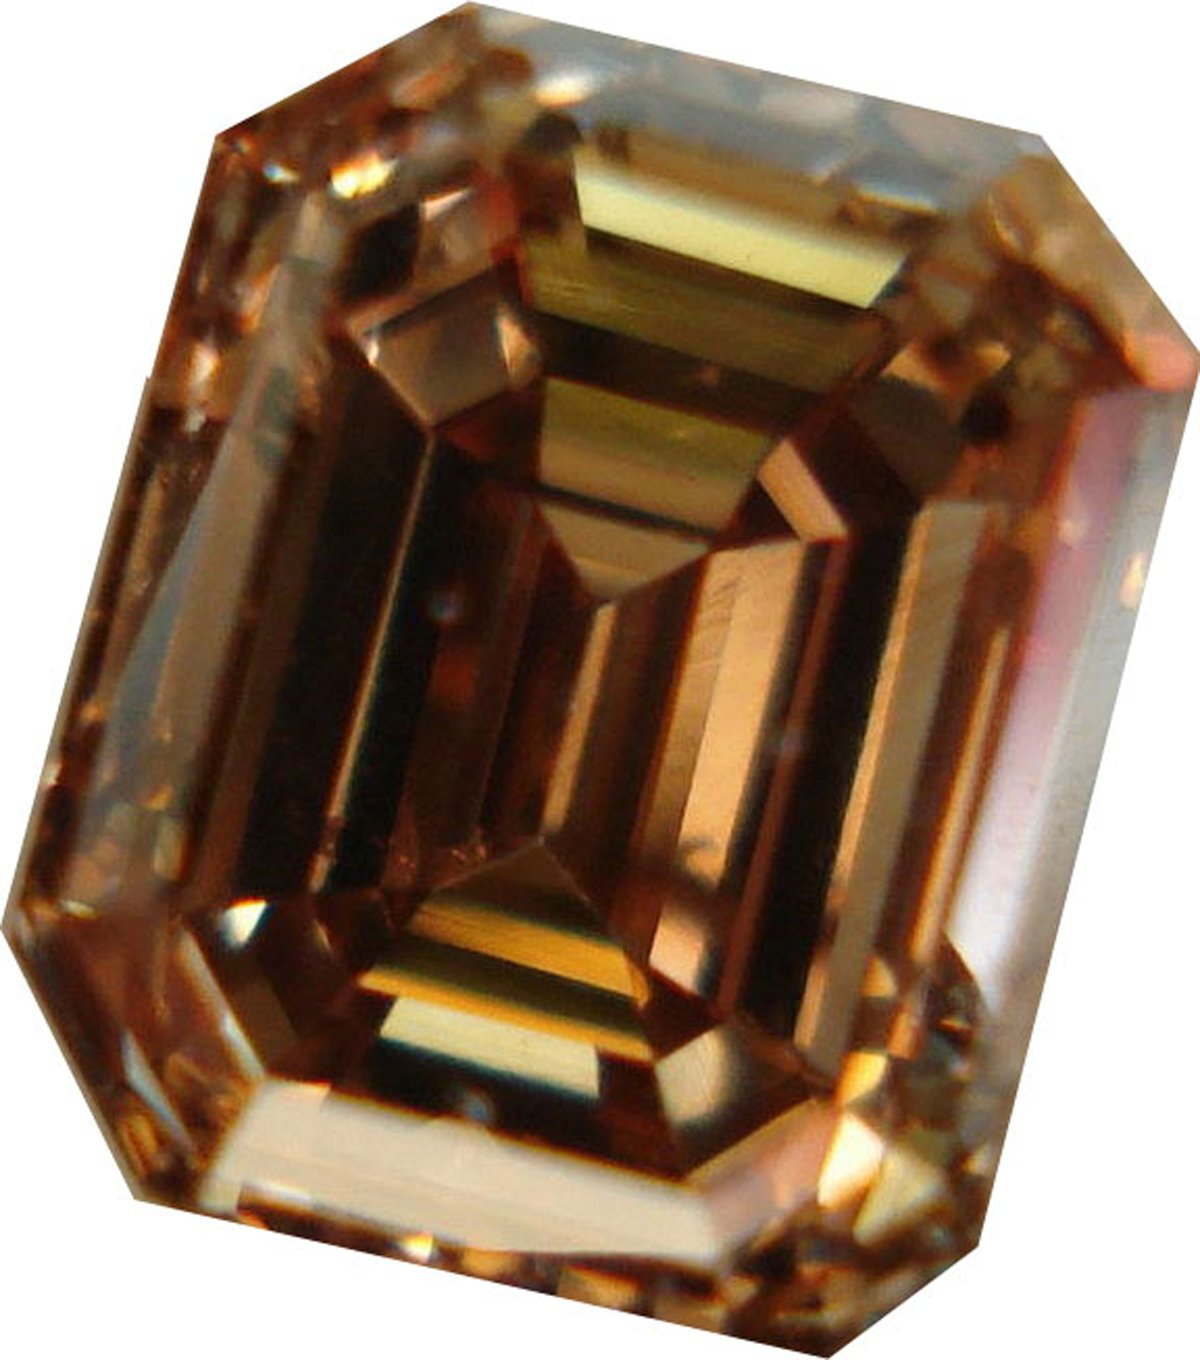 RINGJEWEL 10.55 ct VS1 Emerald Cut Loose Real Moissanite Use 4 Pendant/Ring Brown Color by RINGJEWEL